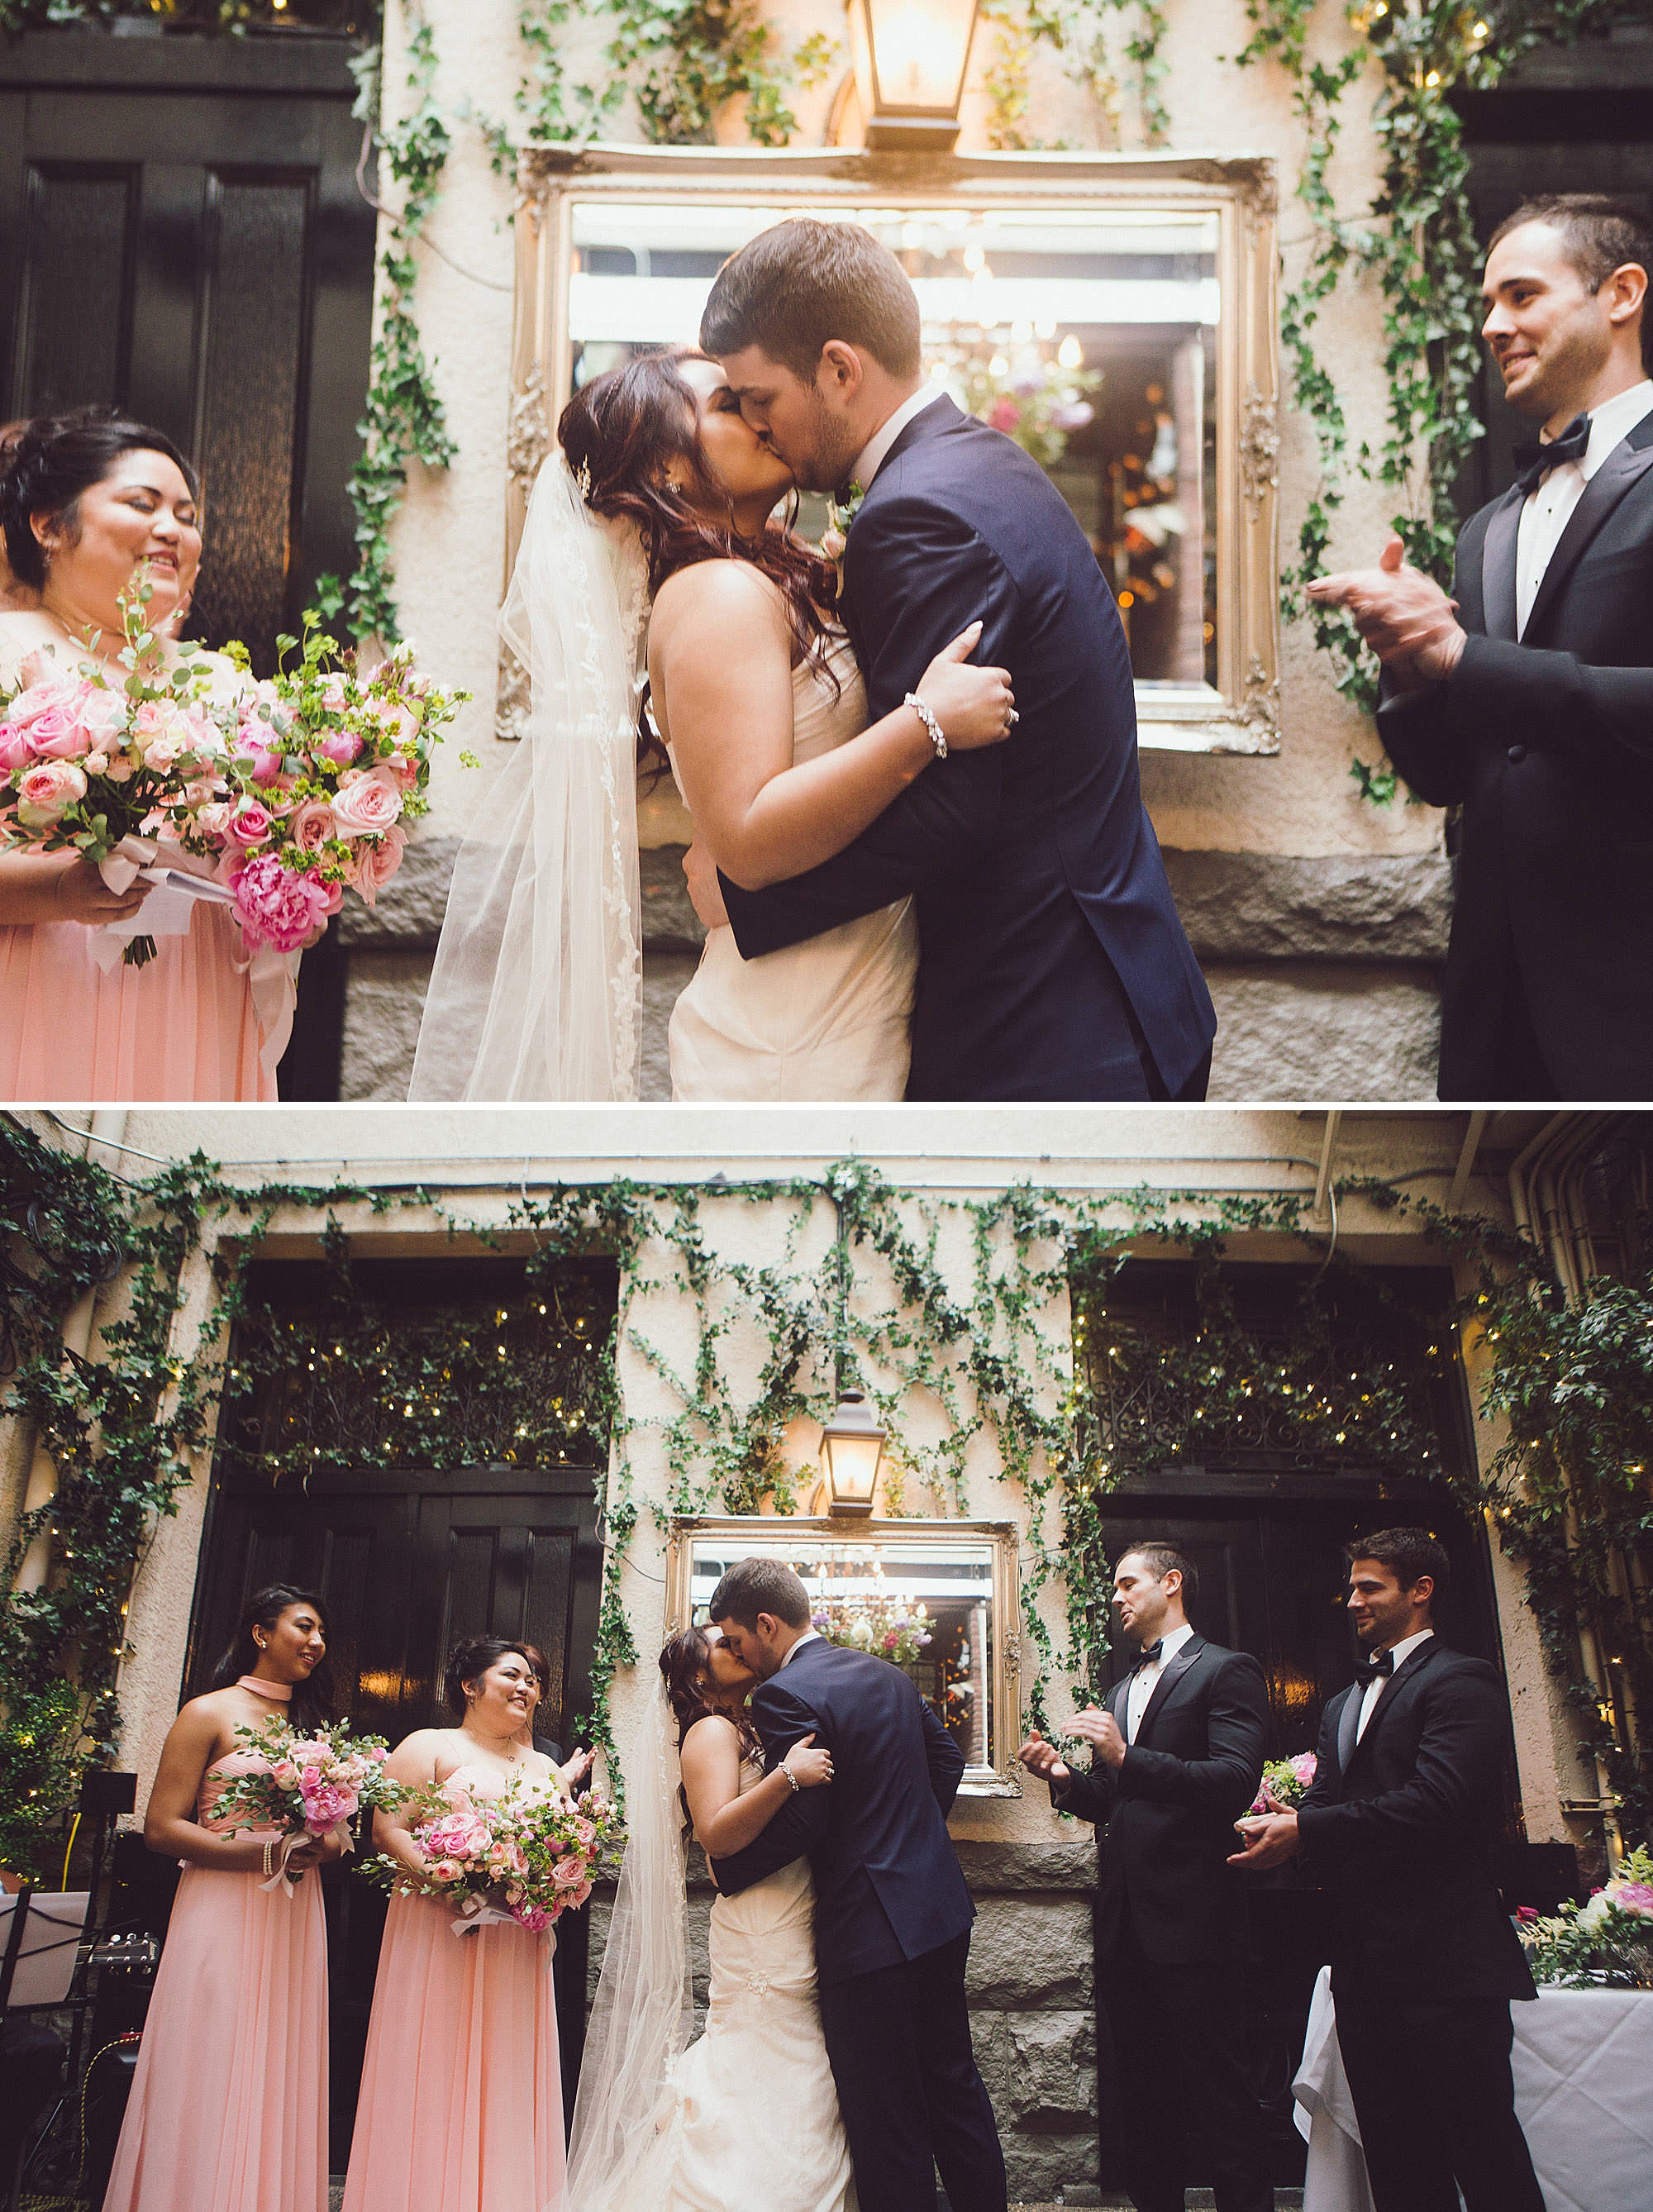 Bride and Groom share first kiss at their wedding